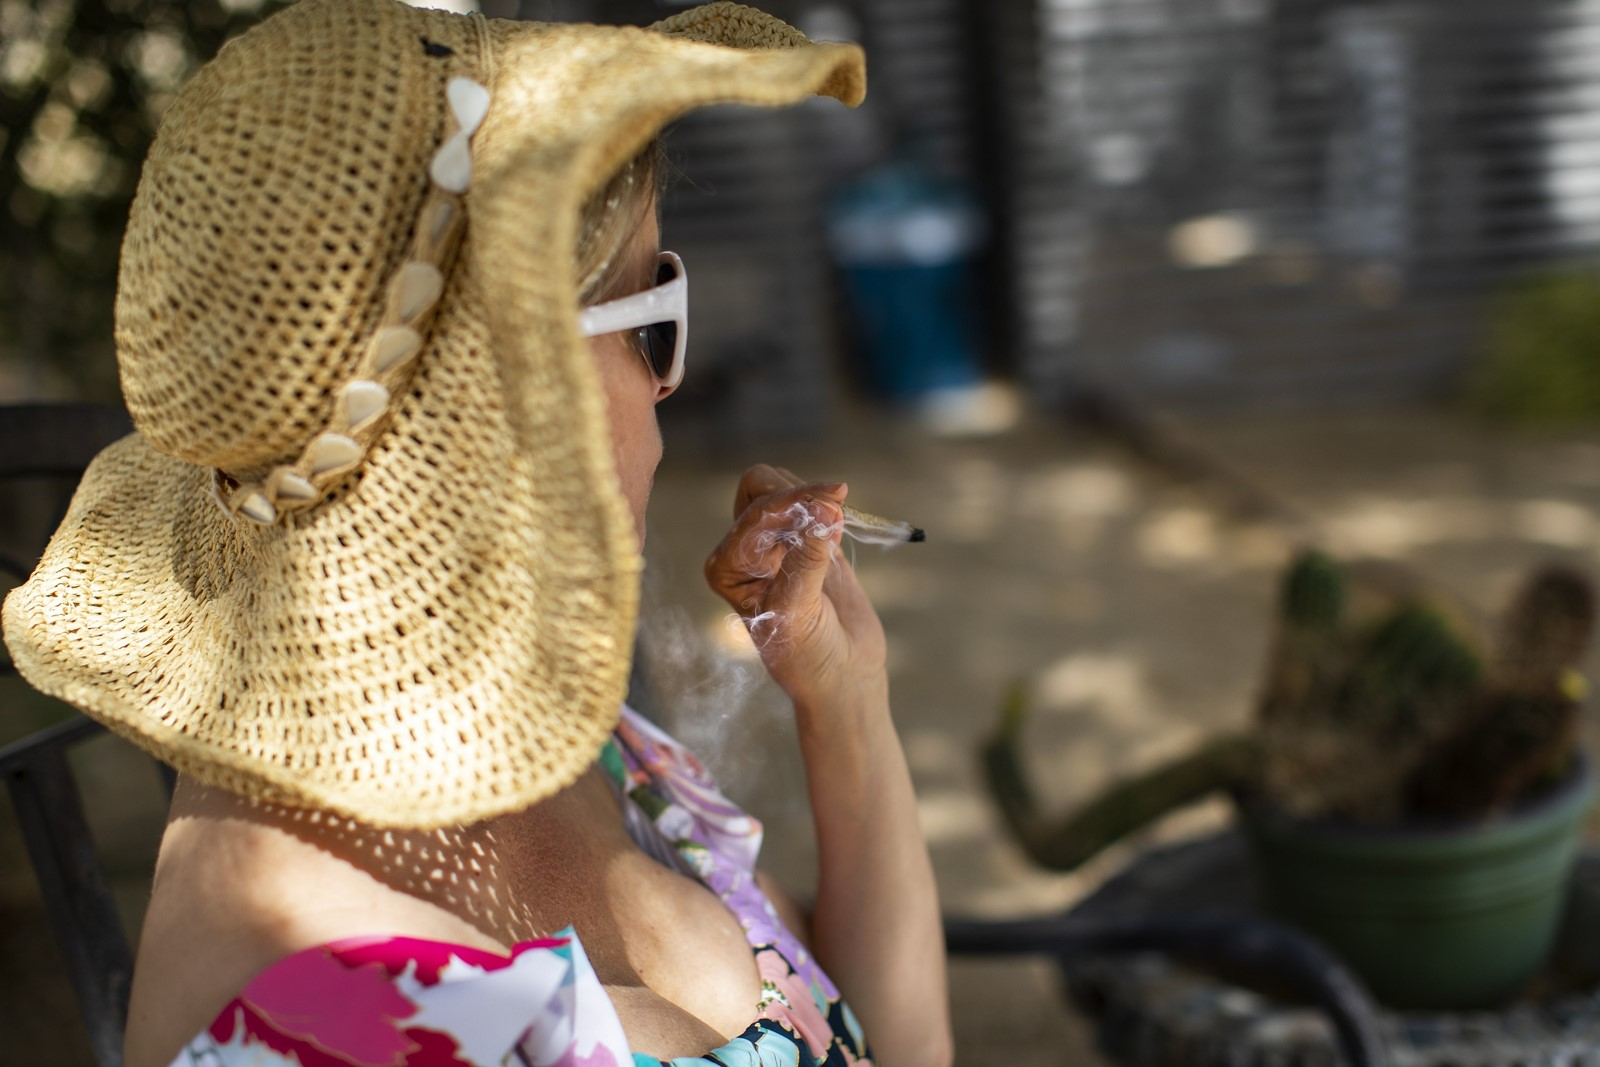 Chevyn McClintock puffs on a joint. Business at the inn has improved since it began courting pot users. — Photograph: Gina Ferazzi/Los Angeles Times.